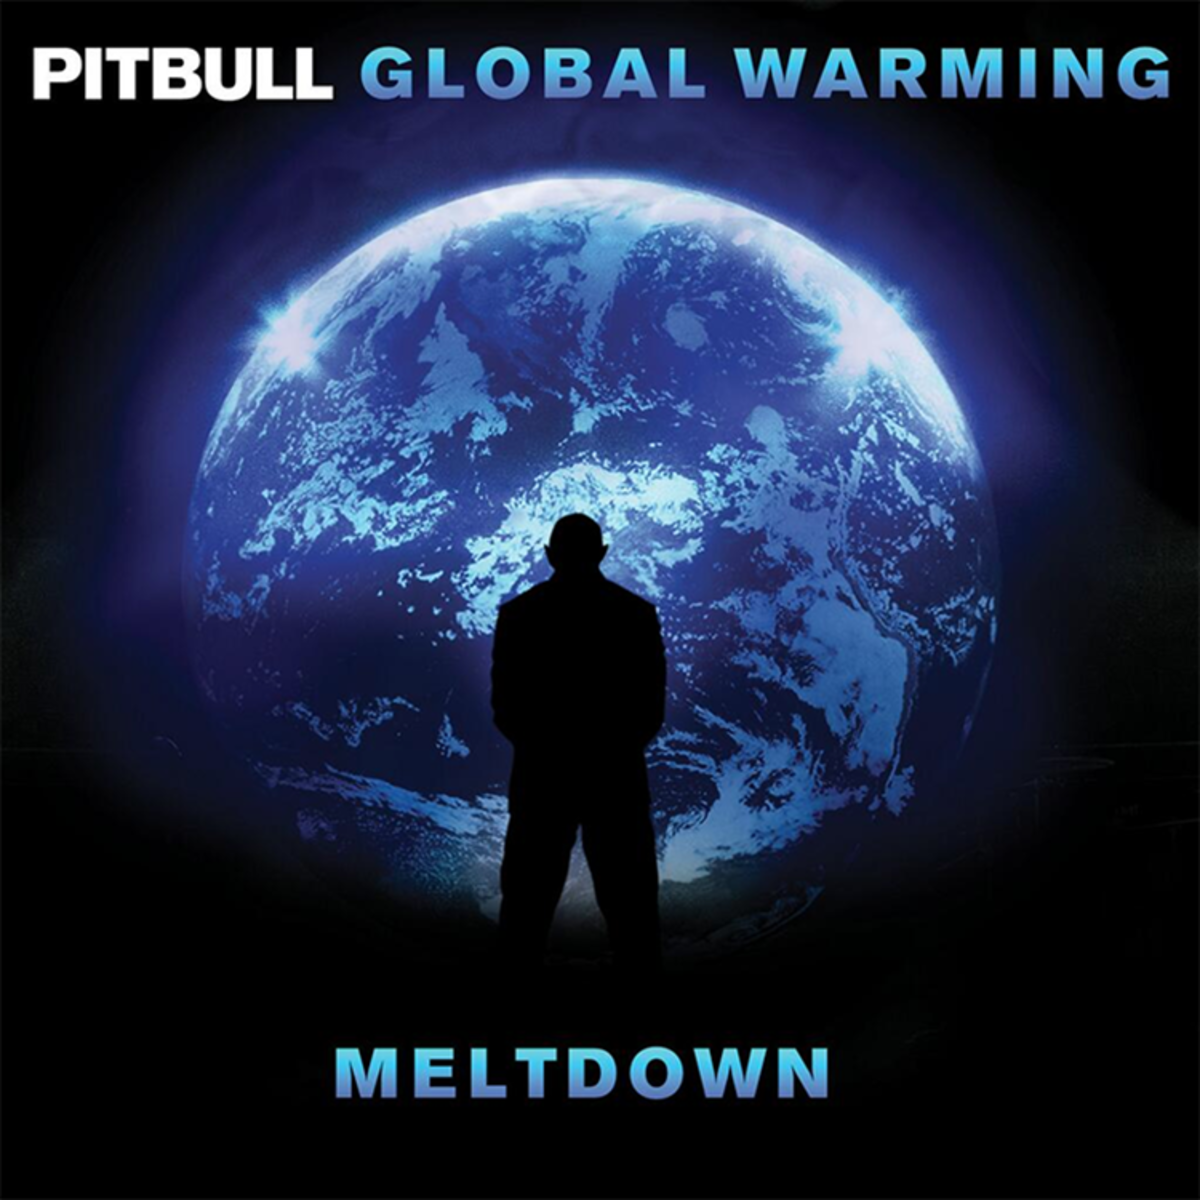 PitBull - Global Warming: Meltdown (Deluxe Extended Version) (2013)